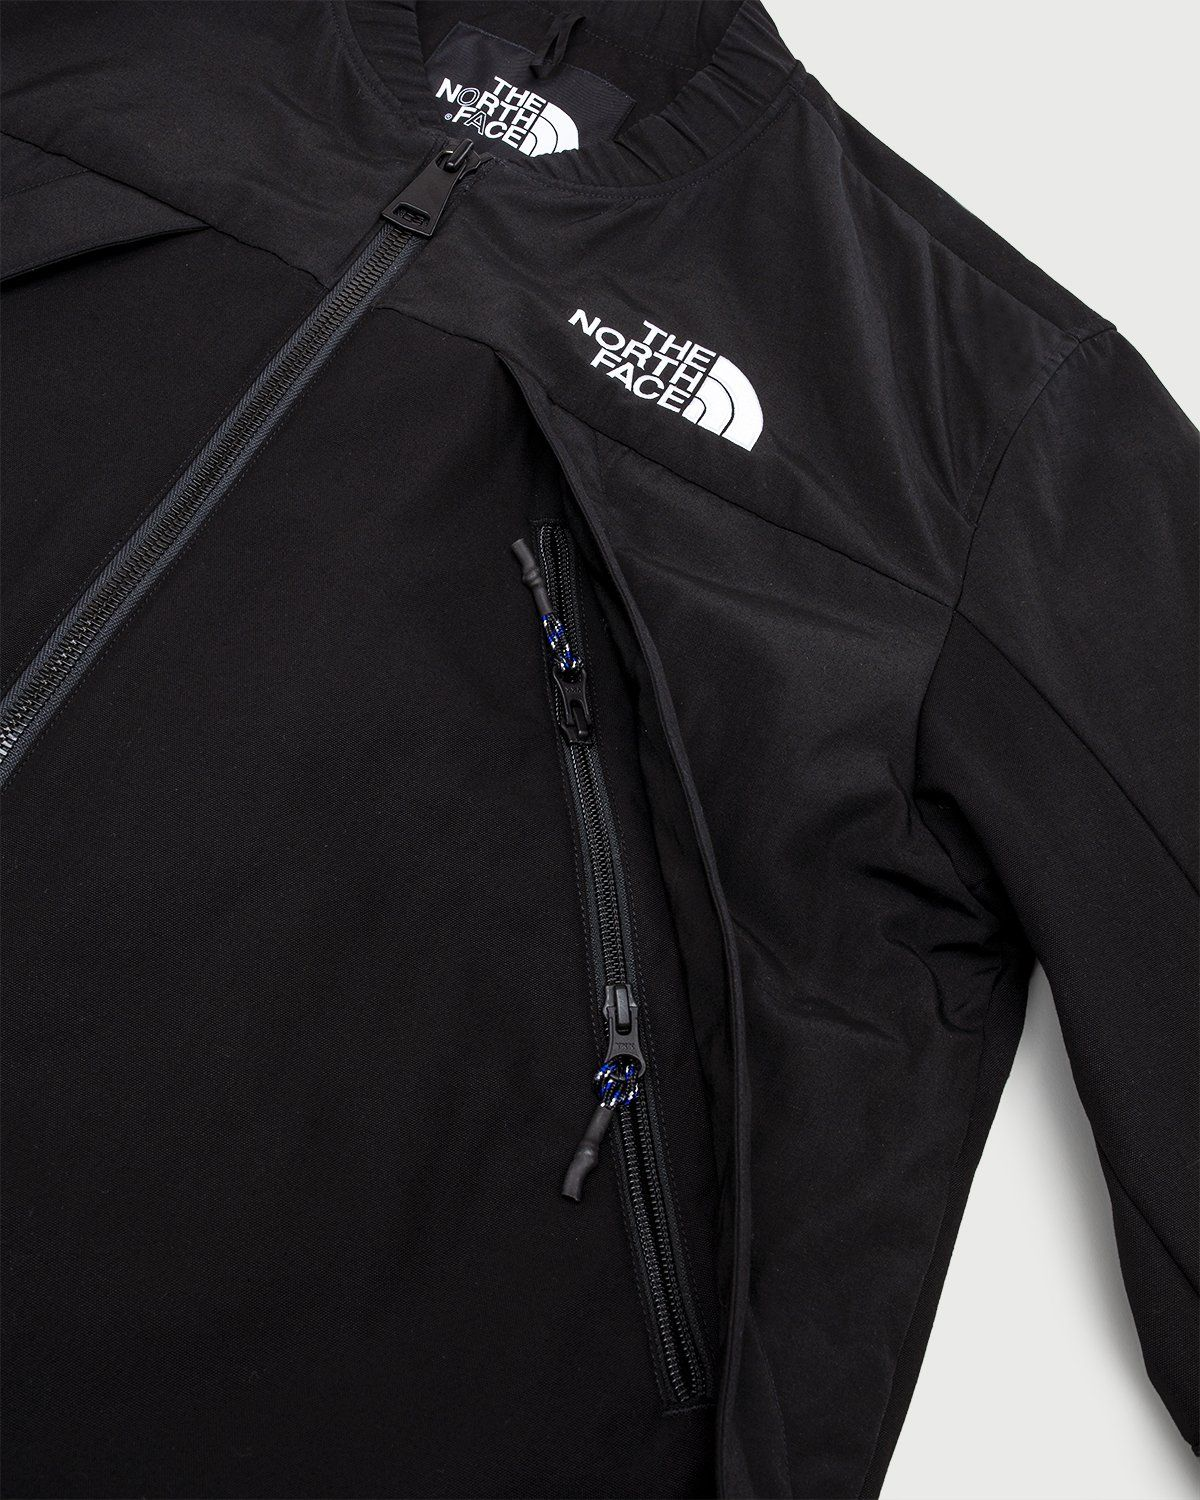 The North Face Black Series - Spectra® Blouson Jacket Black  - Image 4